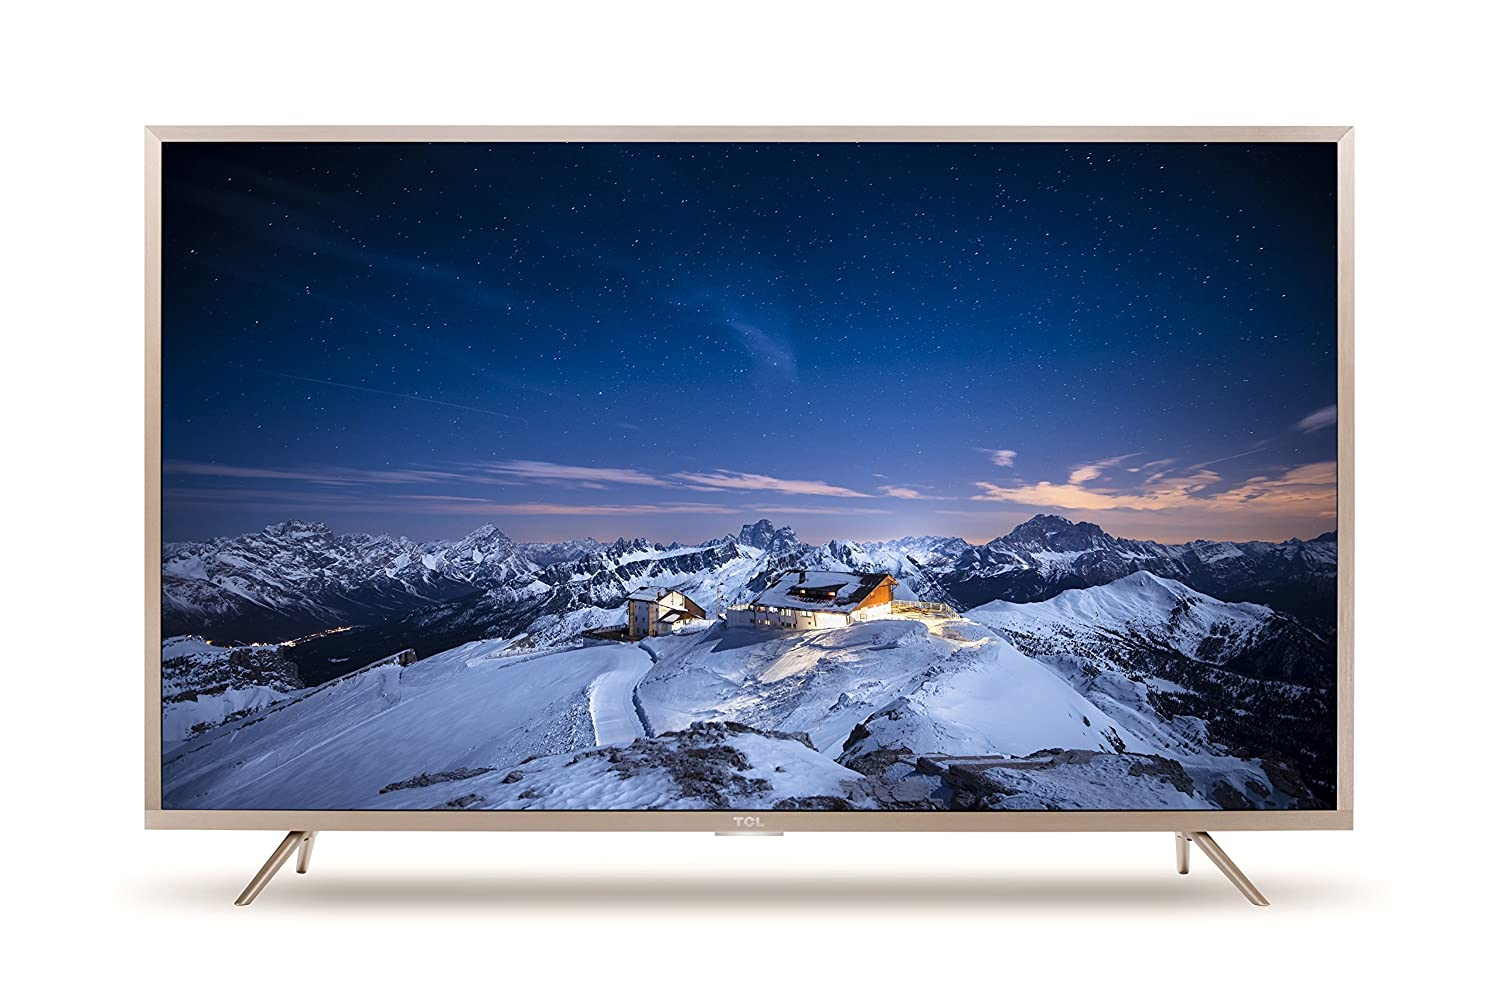 Best 50 inch 4k TVs in India under 50,000 - TCL P2 L49P2US 4K UHD LED Smart TV